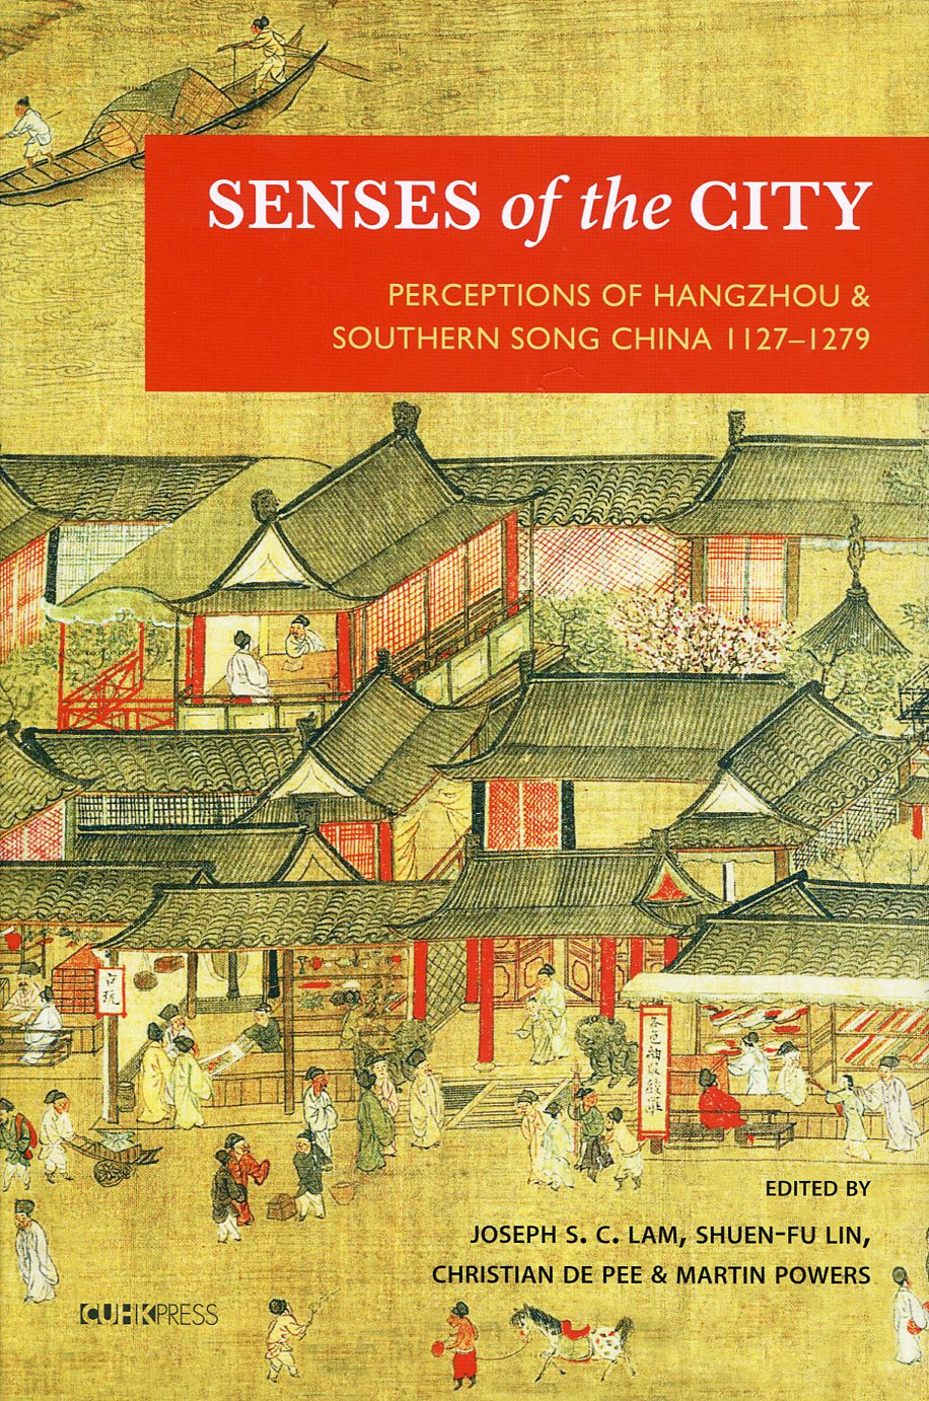 Senses of the City:Perceptions of Hangzhou & Southern Song China 1127-1279